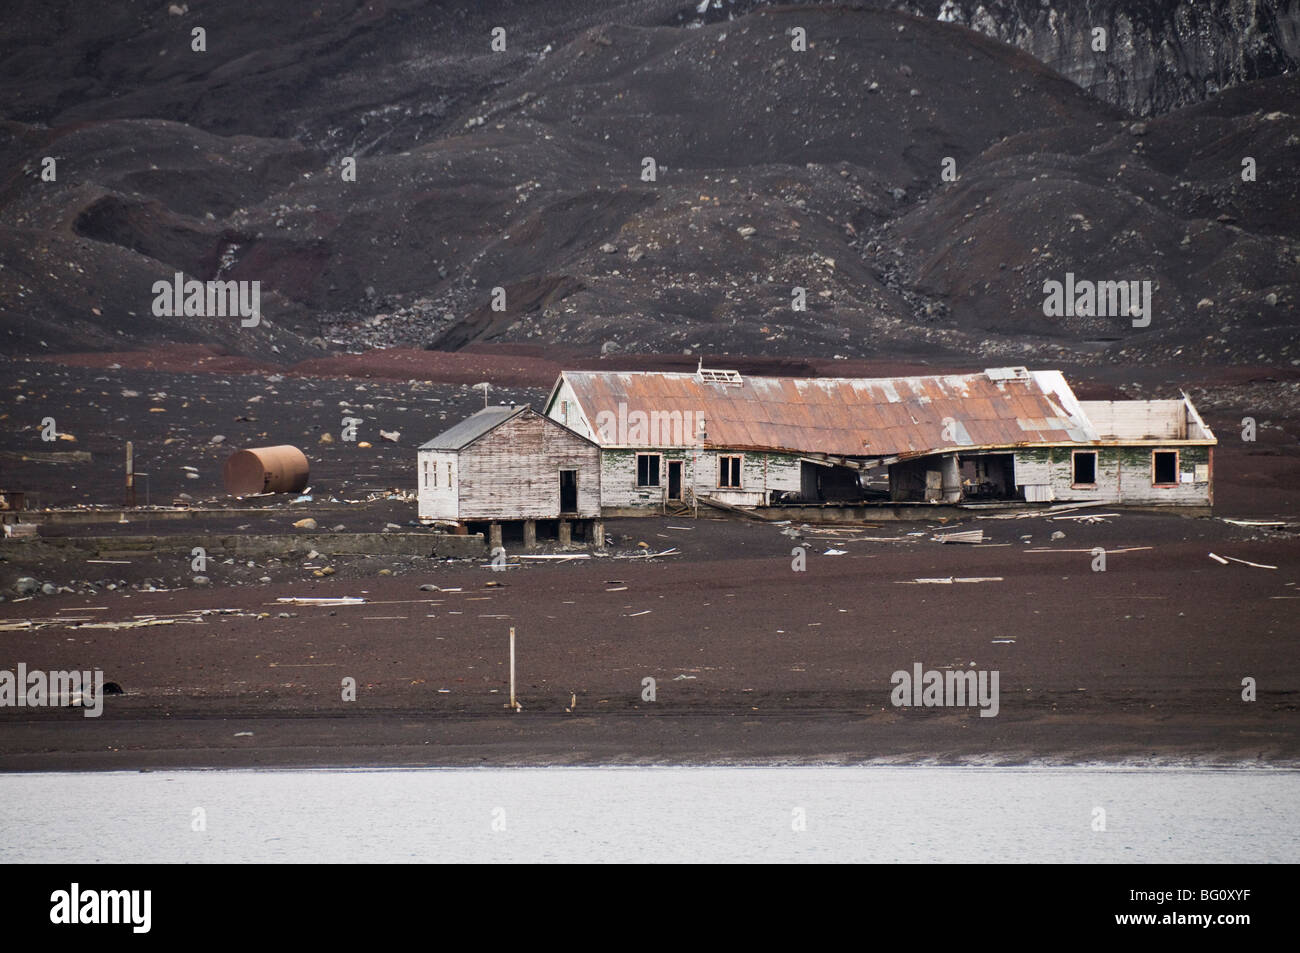 Remains of old Whaling Station, Deception Island, South Shetland Islands, Polar Regions - Stock Image